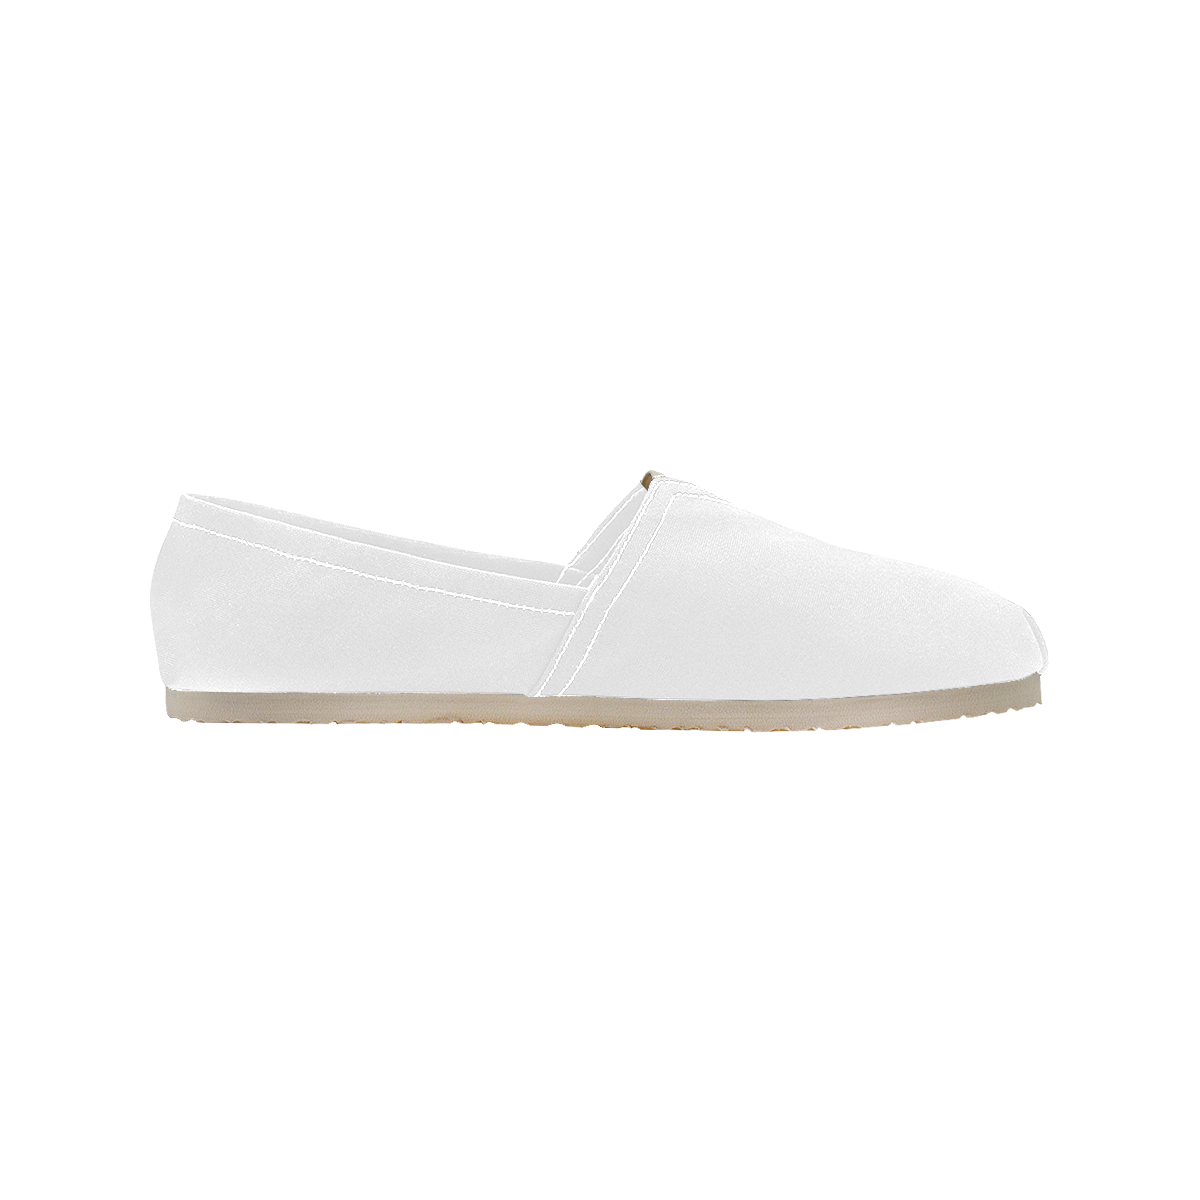 Unisex Classic Canvas Slip-On (Model 1206)